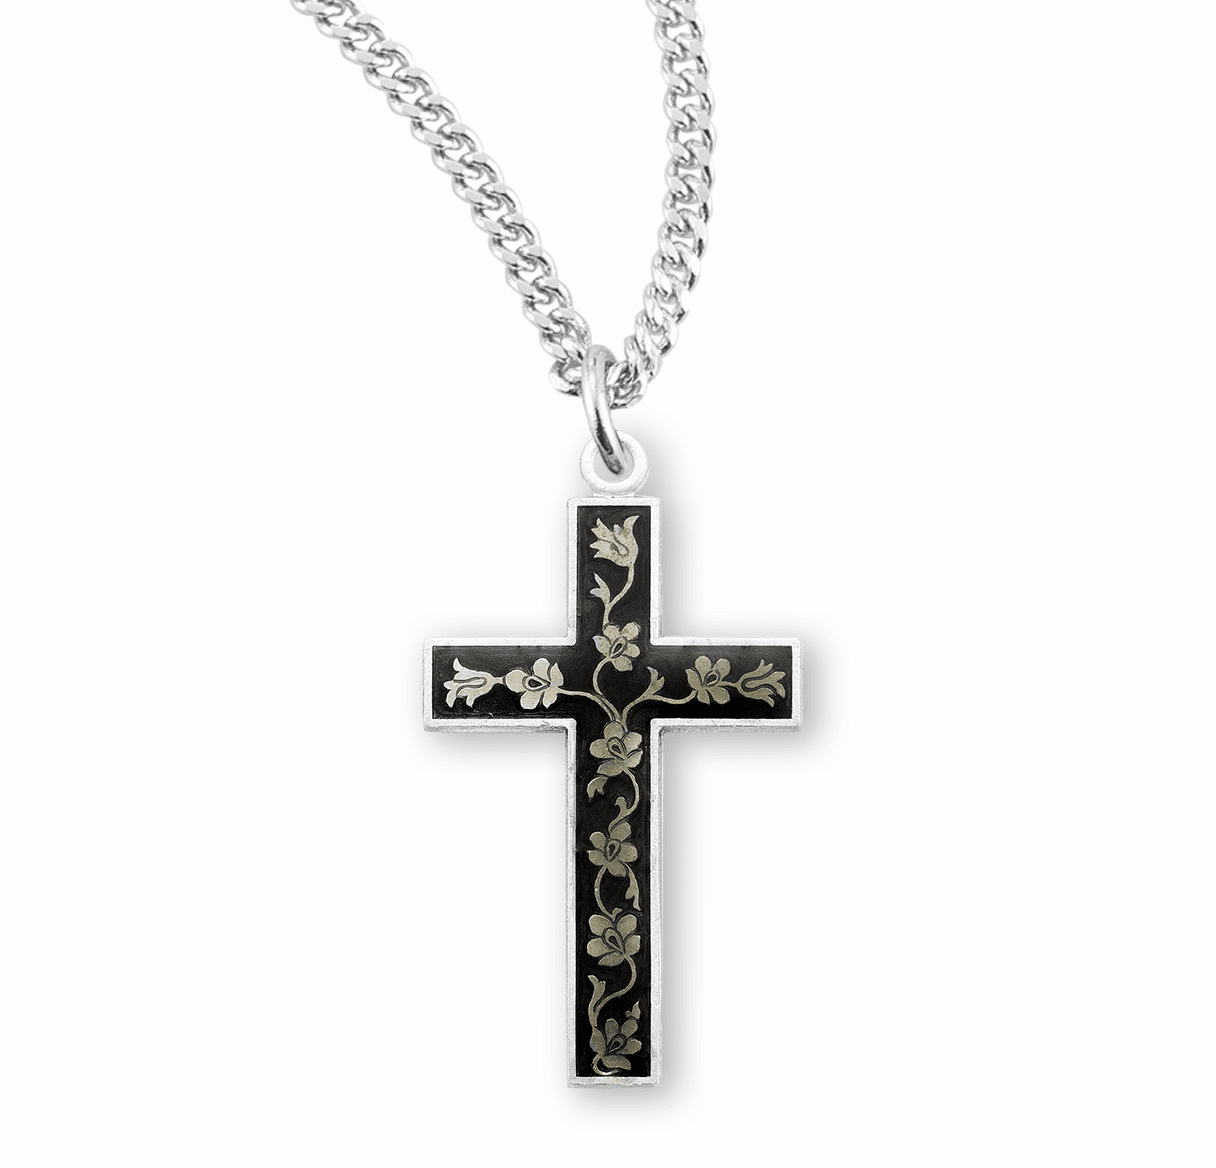 HMH Religious Flowered Black Enameled Sterling Silver Cross Pendant